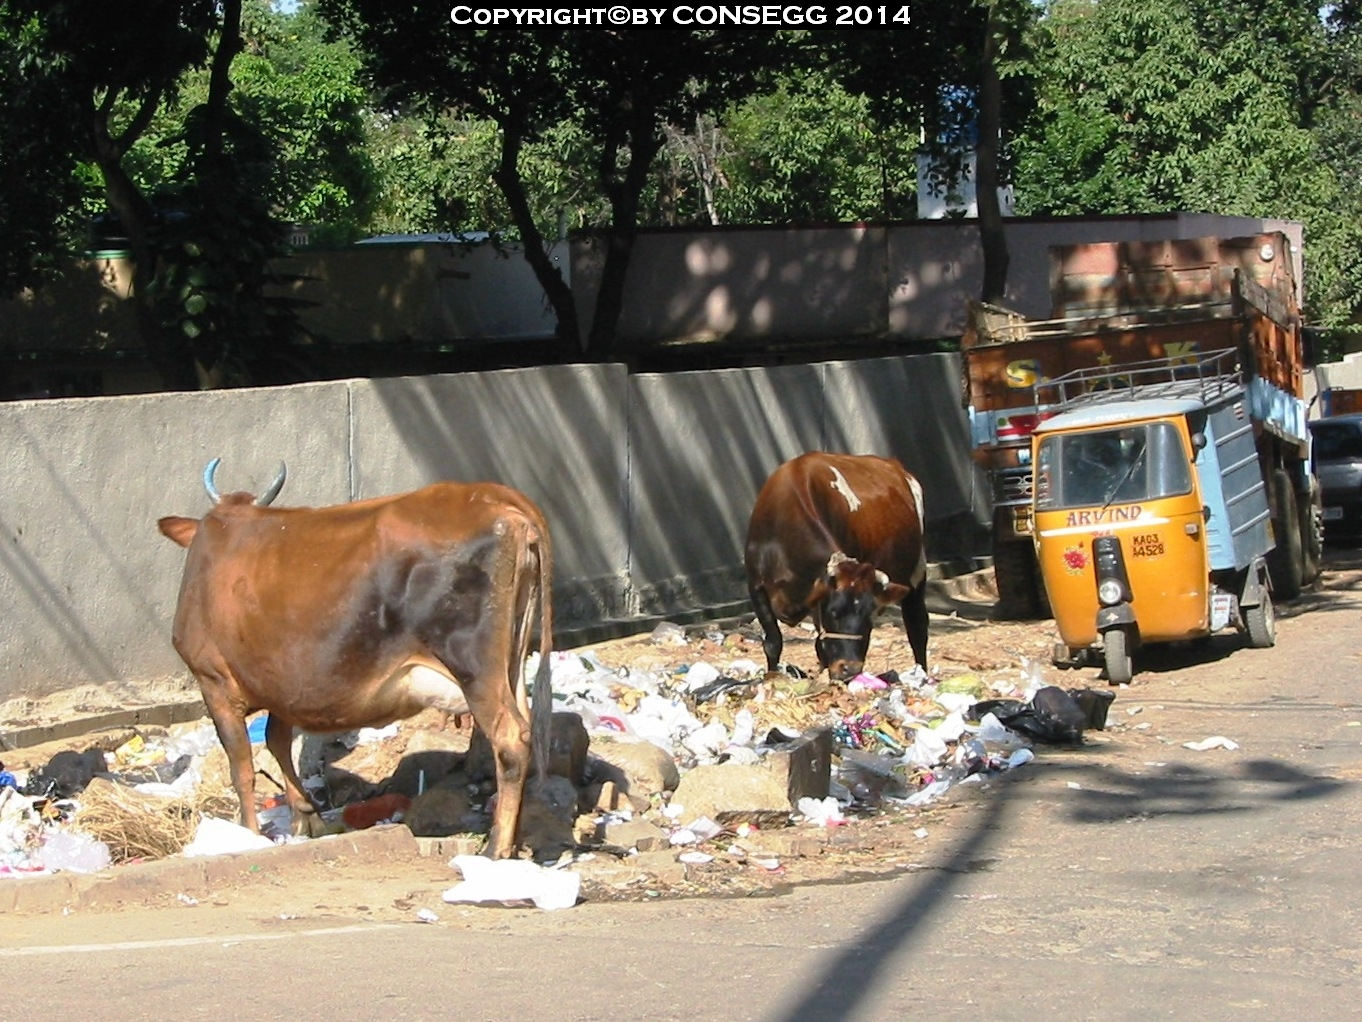 Recycling by cows